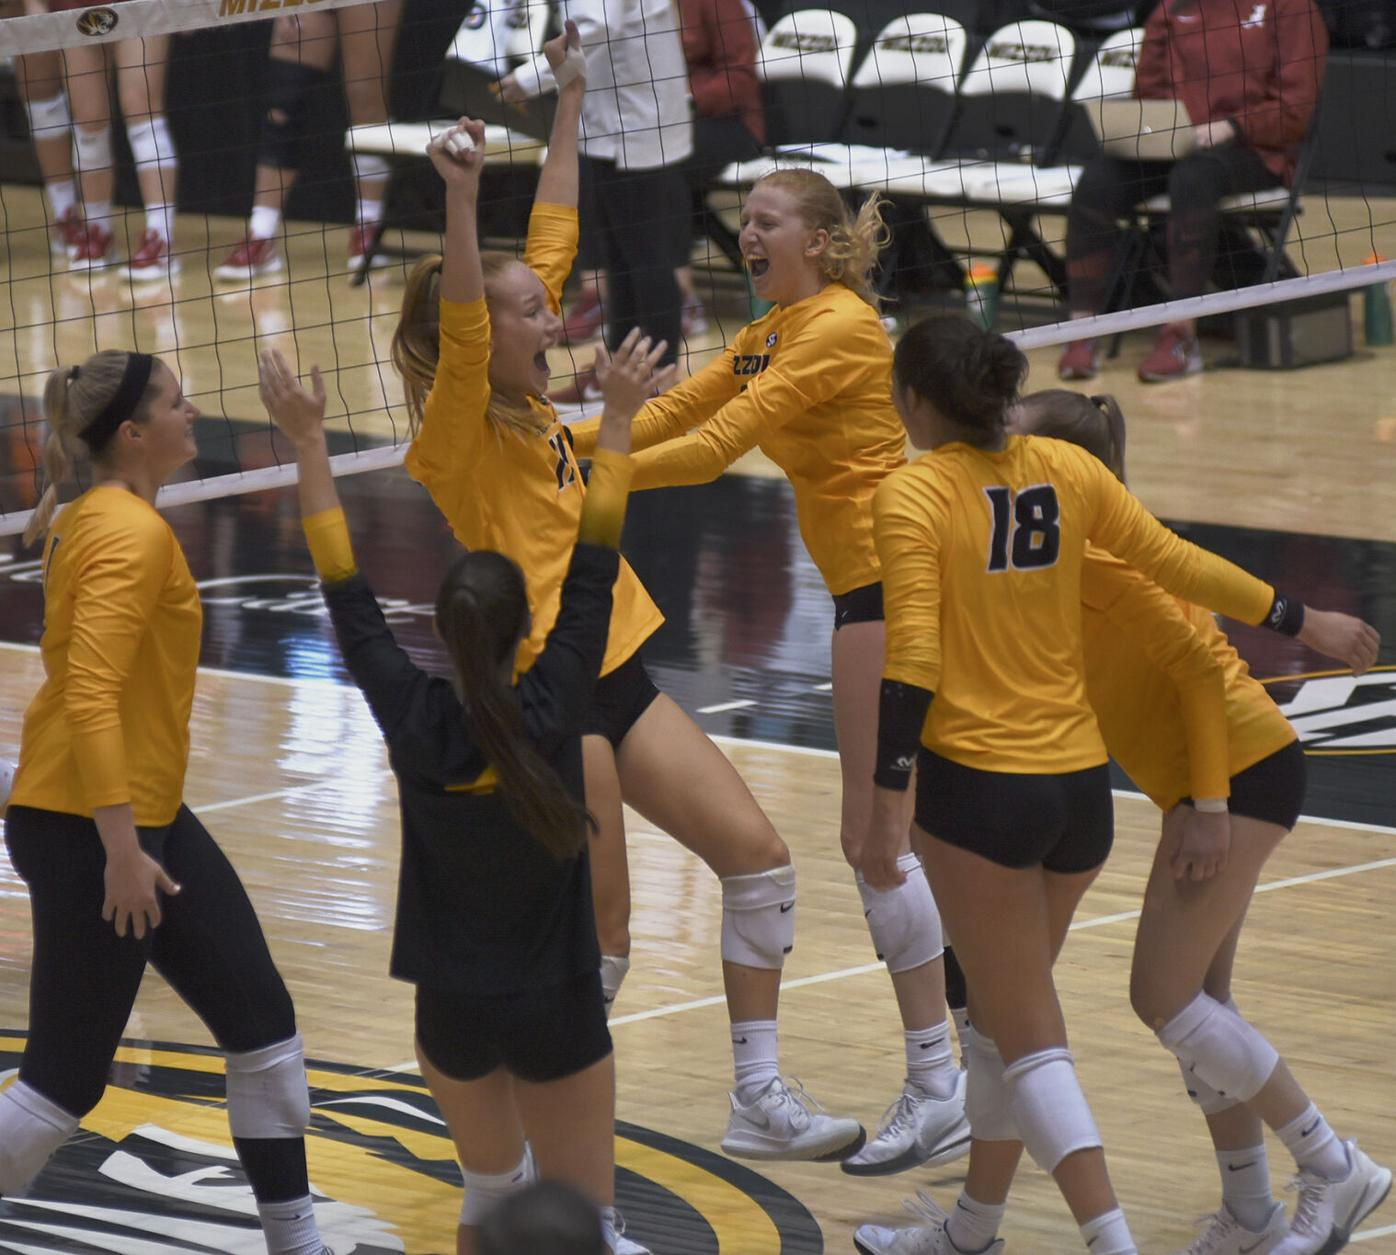 Missouri Tigers celebrate a point scored during the fourth set of the volleyball game